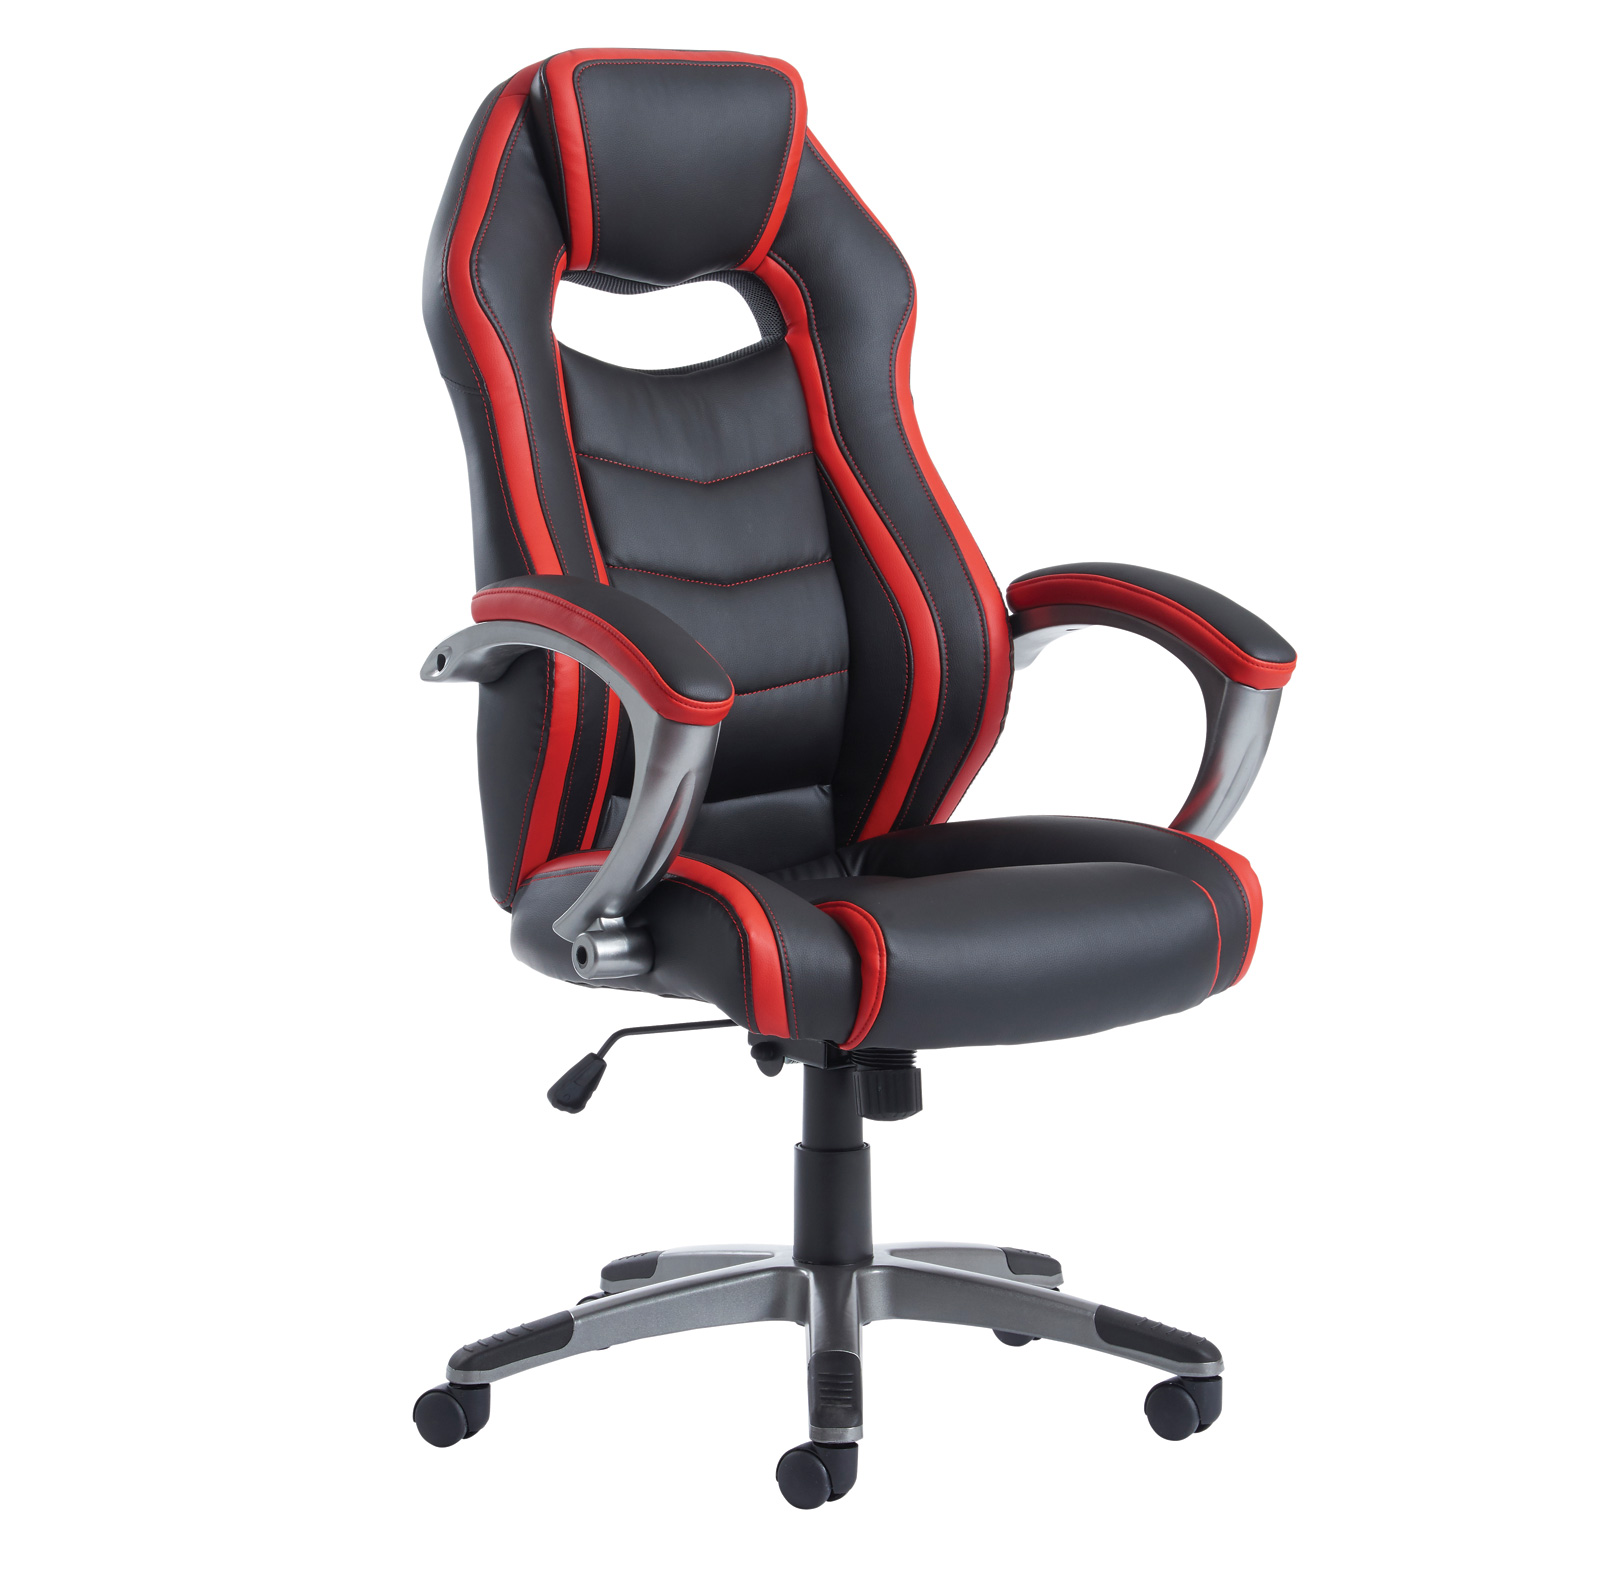 Jensen executive chair - black and red